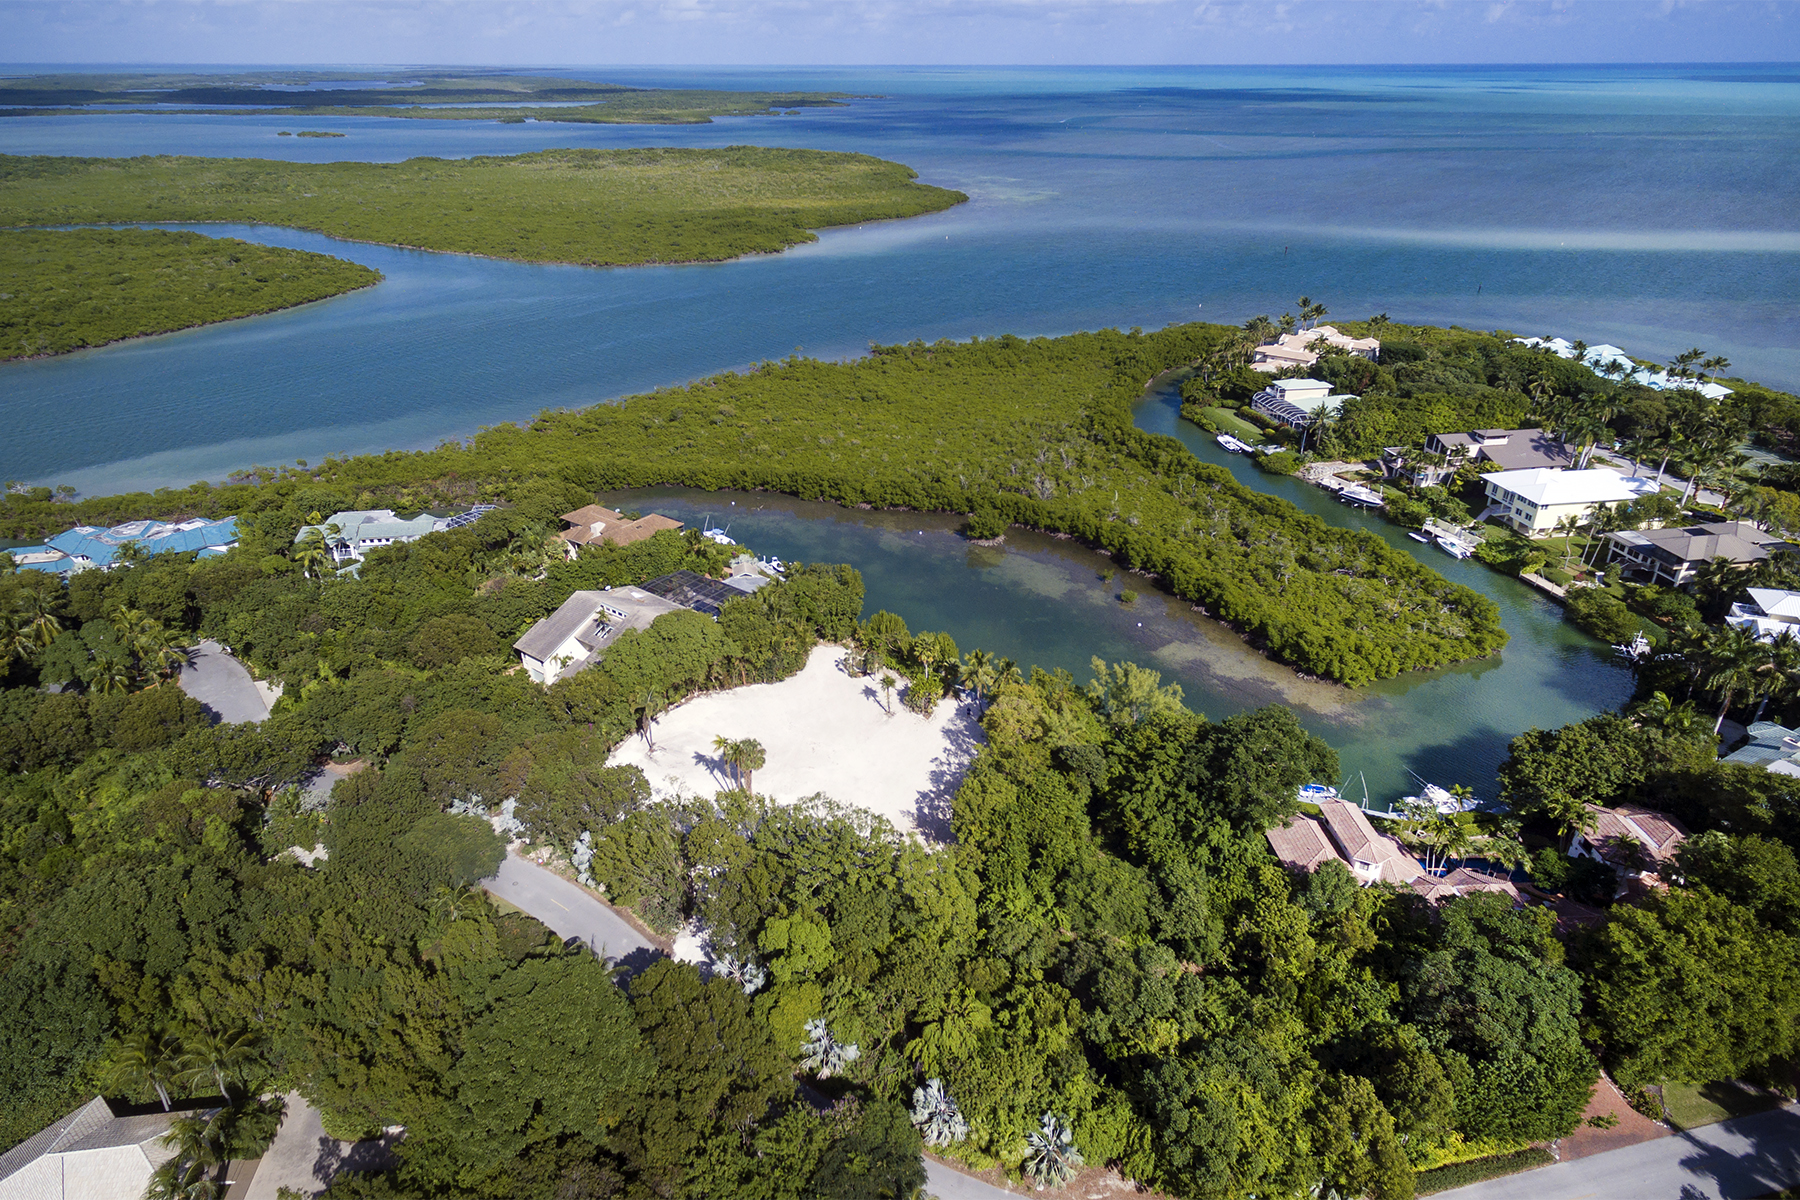 Terreno per Vendita alle ore Expansive Location to Build Your Dream Home at Ocean Reef 40-42 Cardinal Lane Ocean Reef Community, Key Largo, Florida, 33037 Stati Uniti